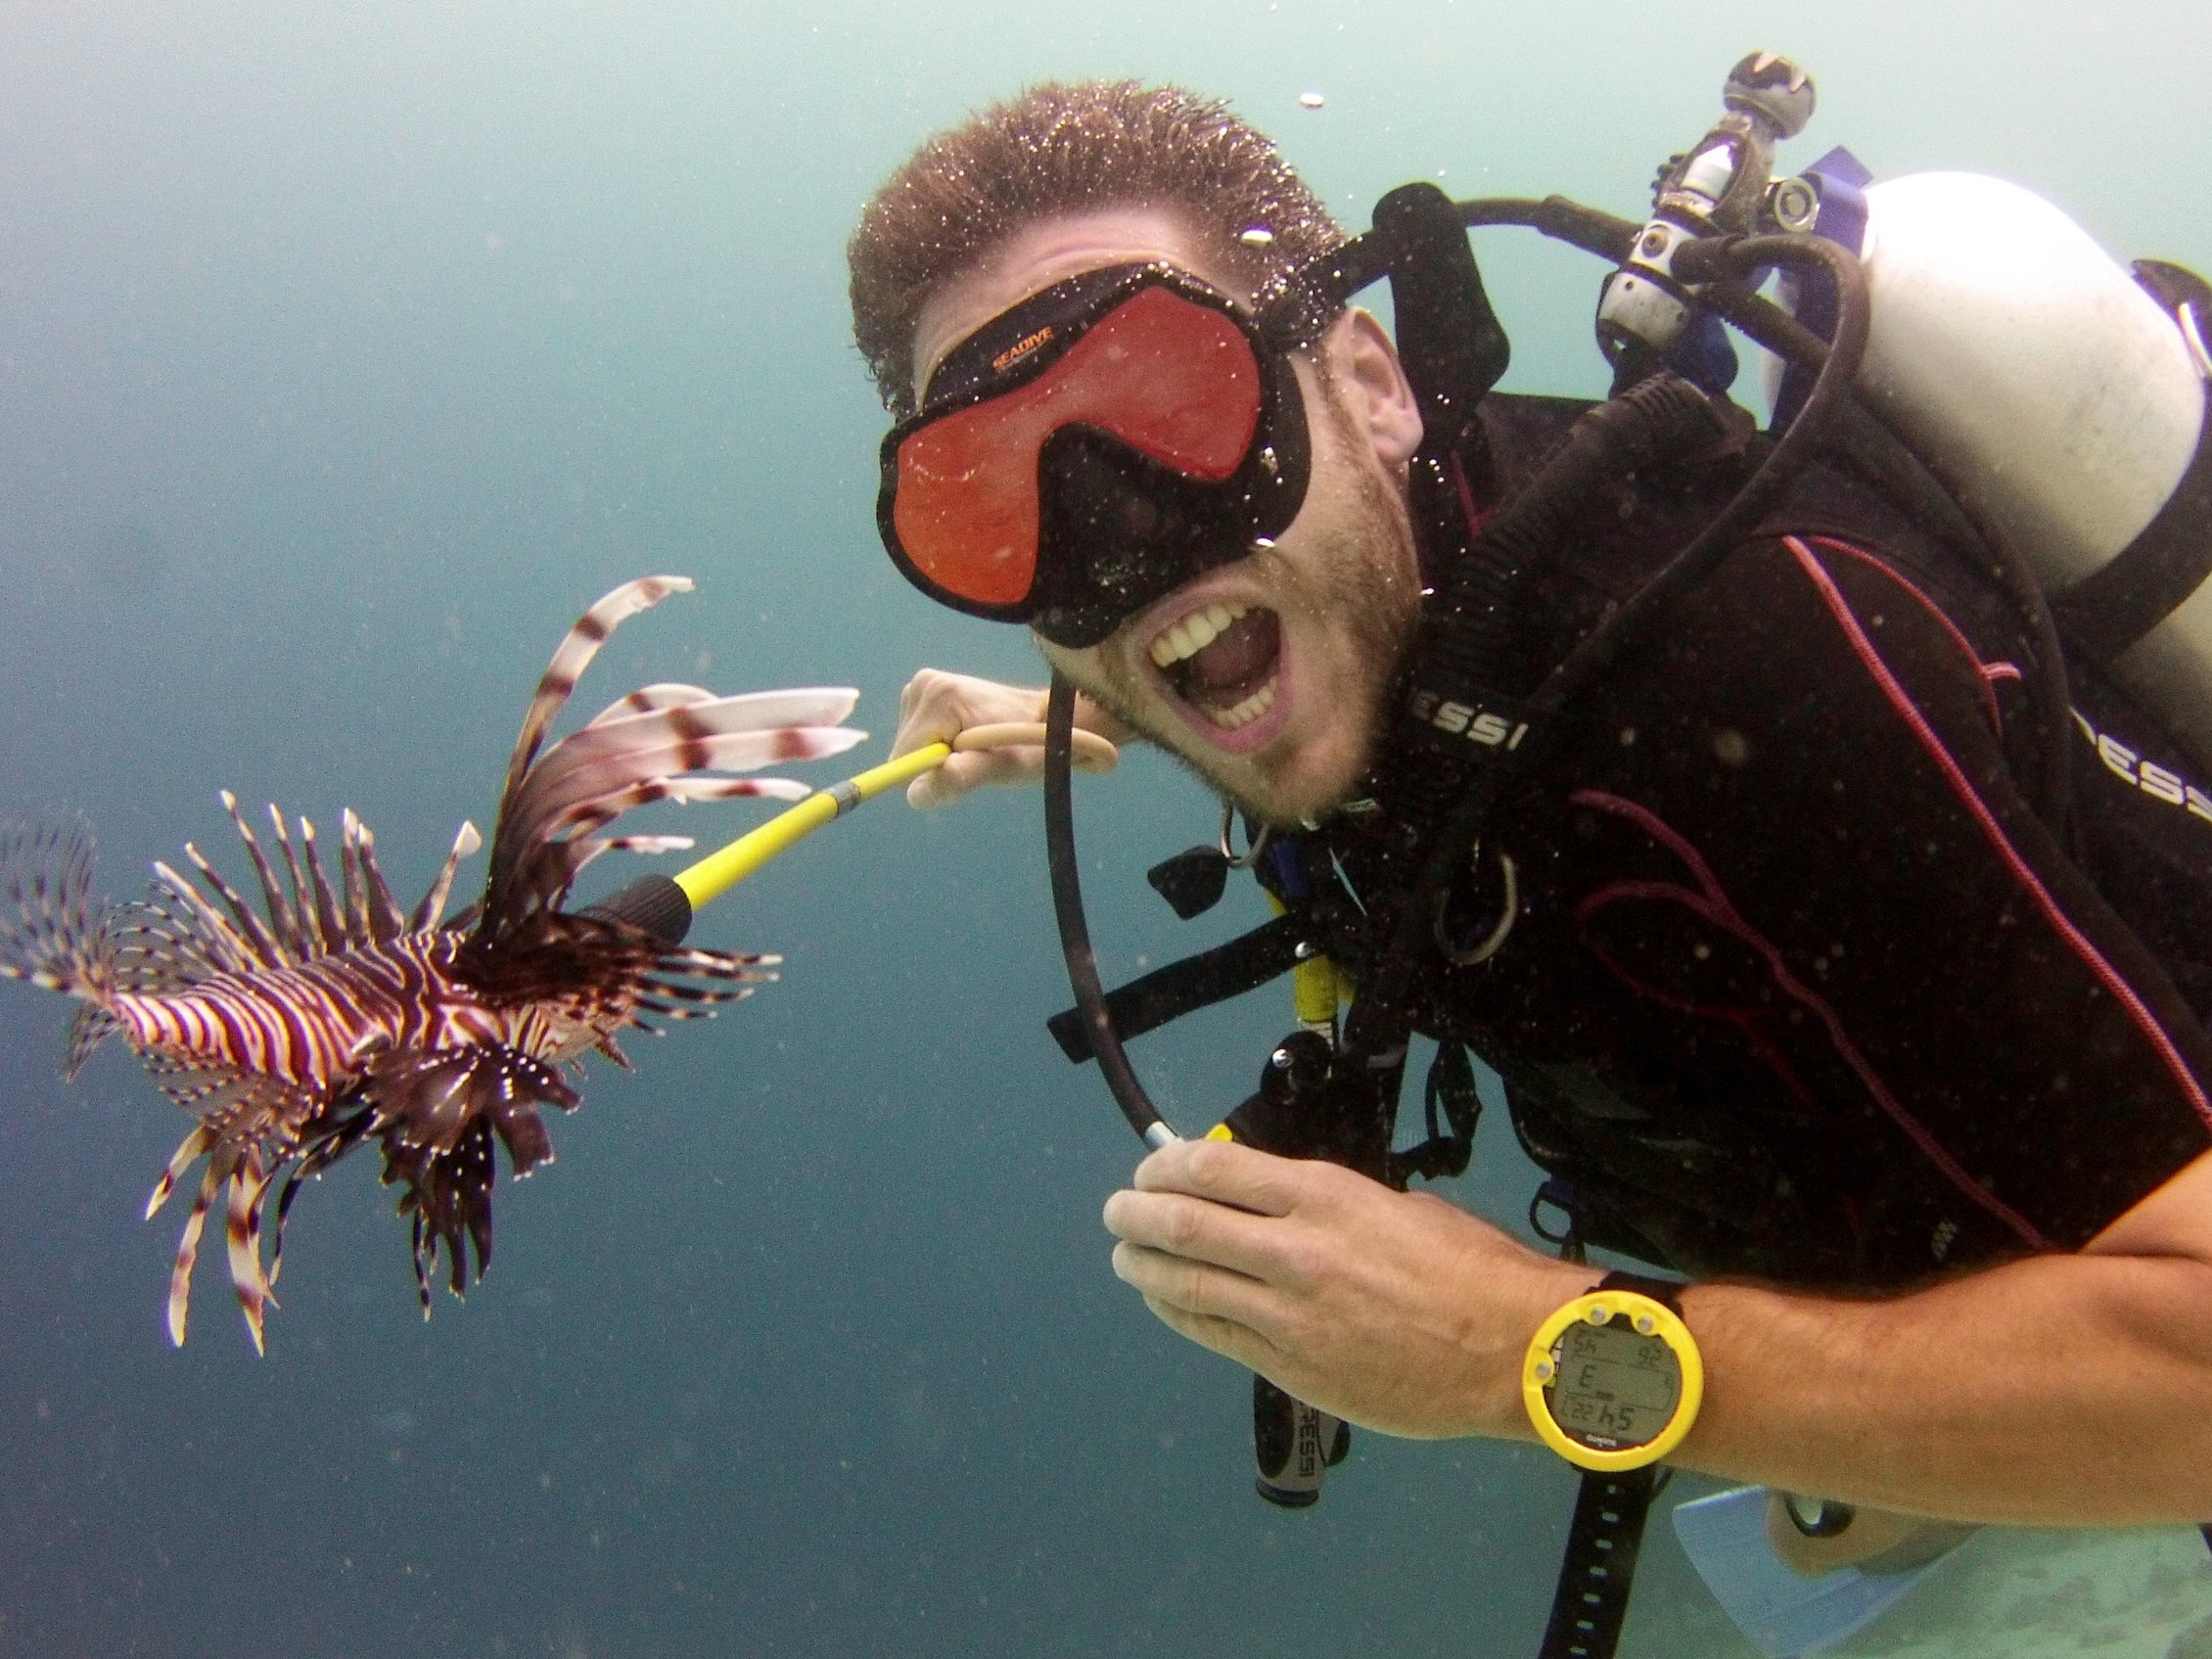 PADI Training - Receive up to 40% off on PADI courses. Follow us on facebook to sign up for the upcoming programs.